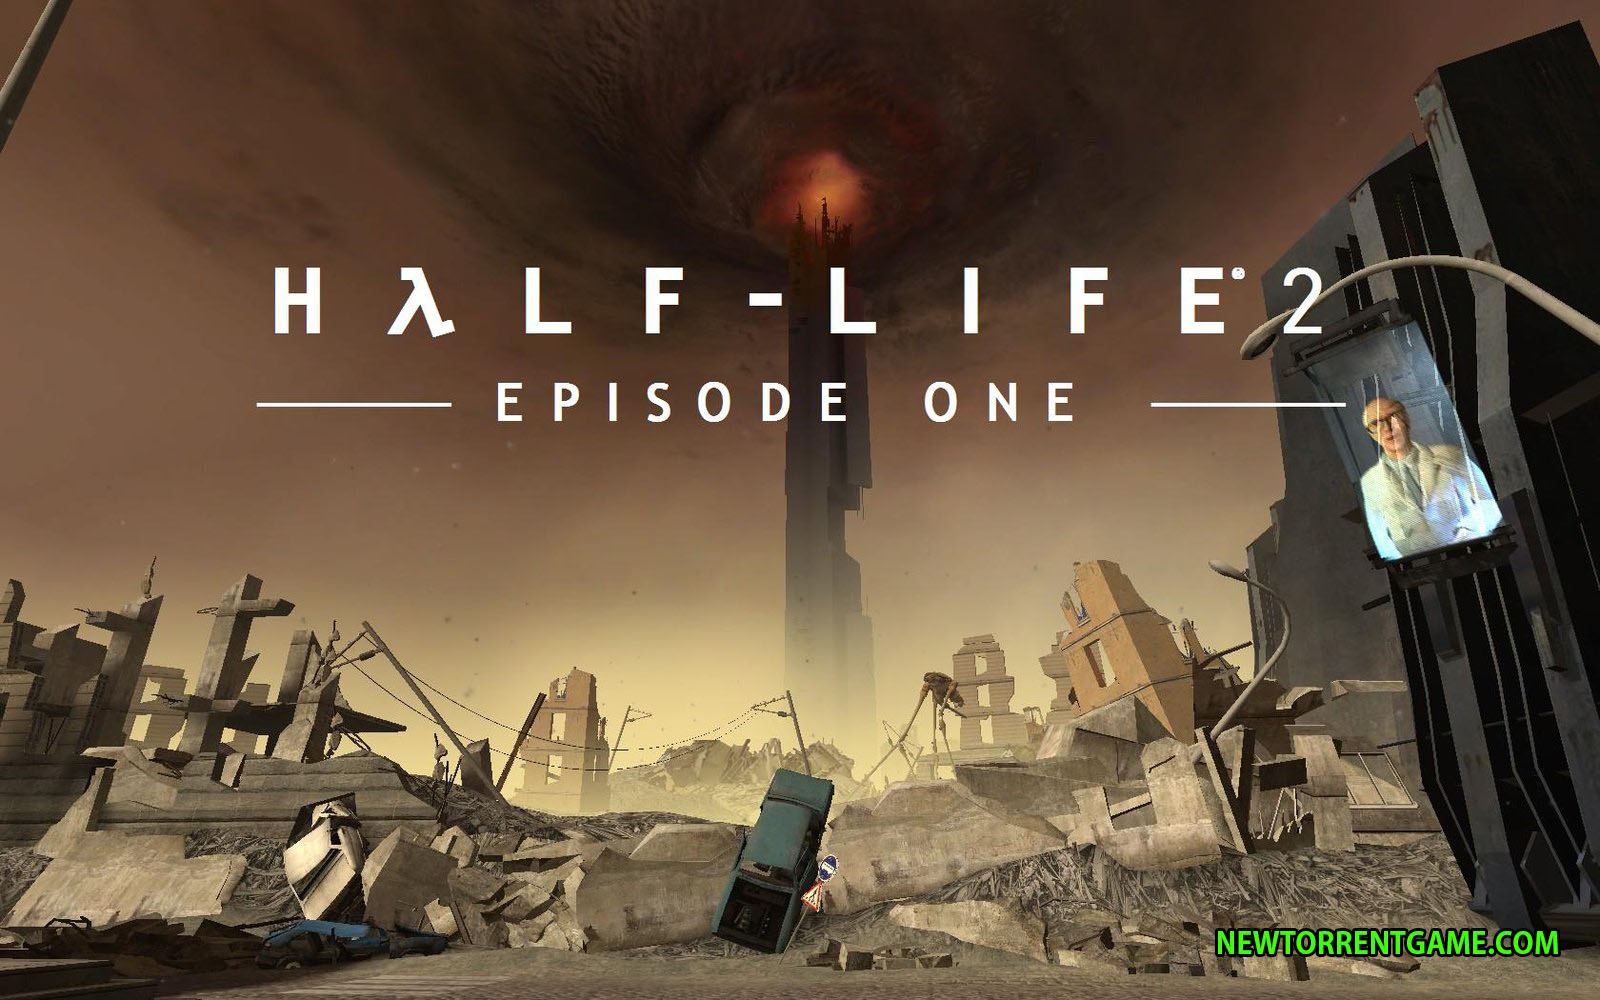 HALF-LIFE 2: EPISODE ONE TORRENT - FREE FULL DOWNLOAD - NEWTORRENTGAME